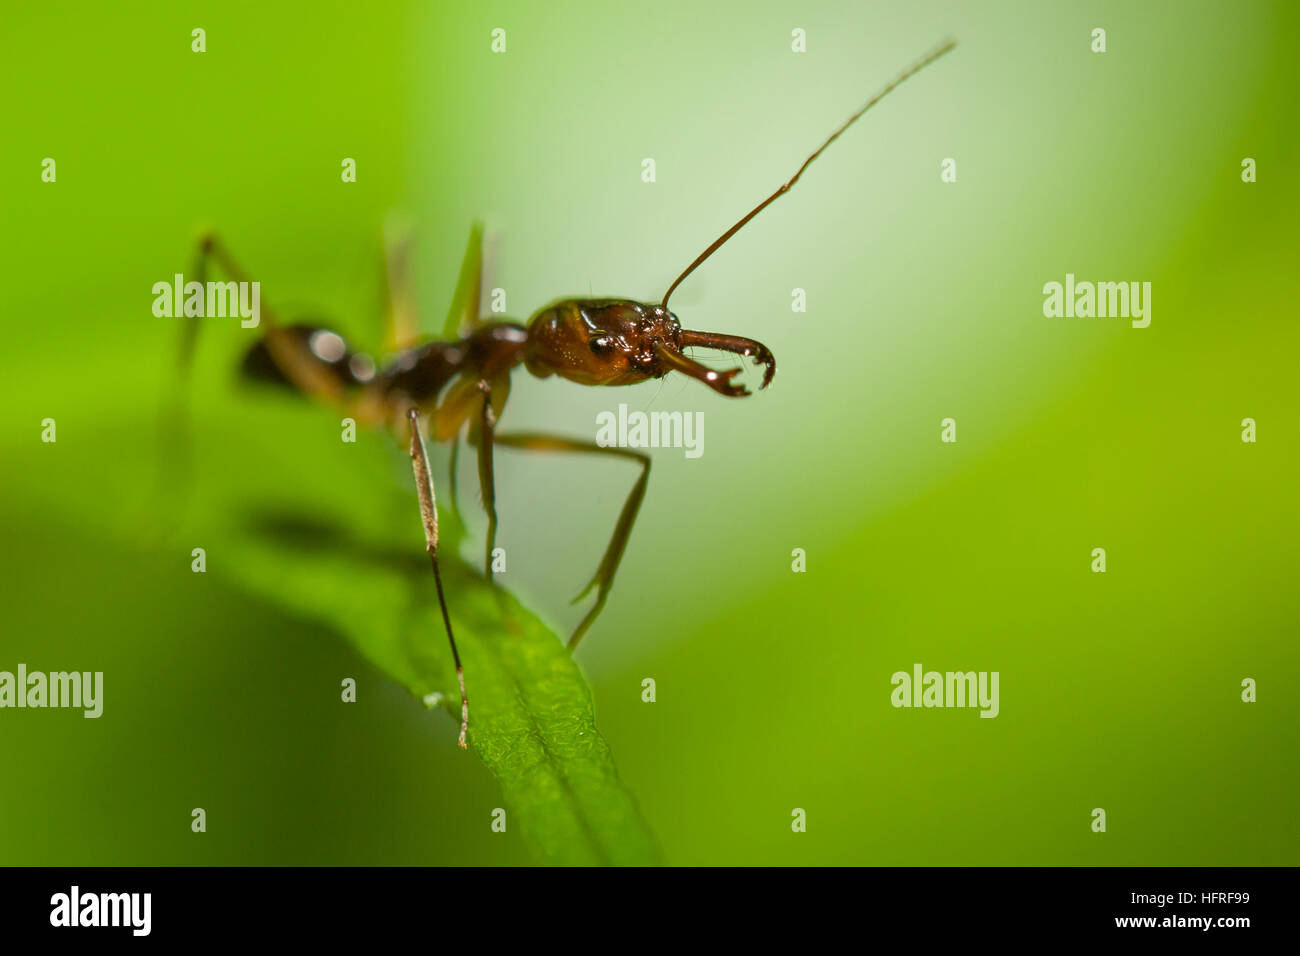 A trap-jaw ant (Odontomachus sp.). - Stock Image